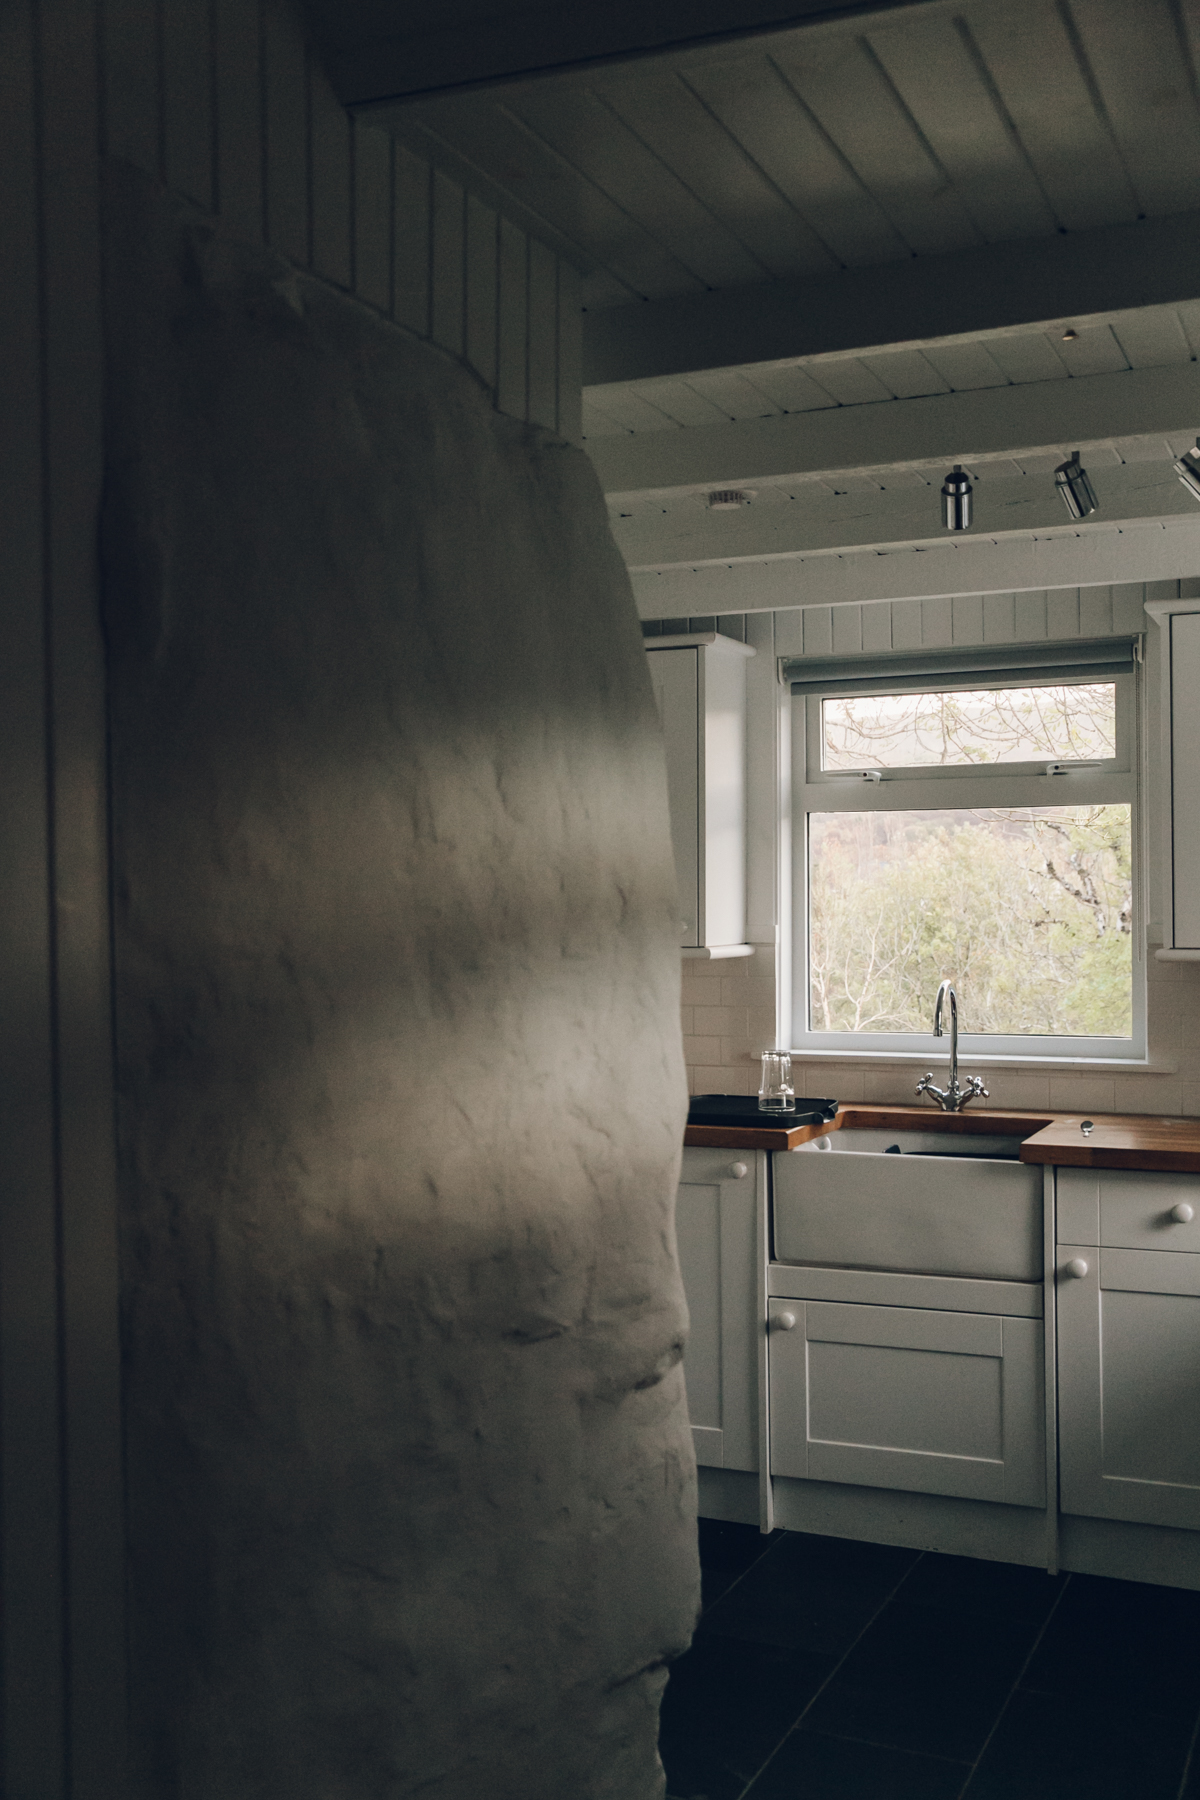 The kitchen inside The Crofter's House on the Isle of Skye.